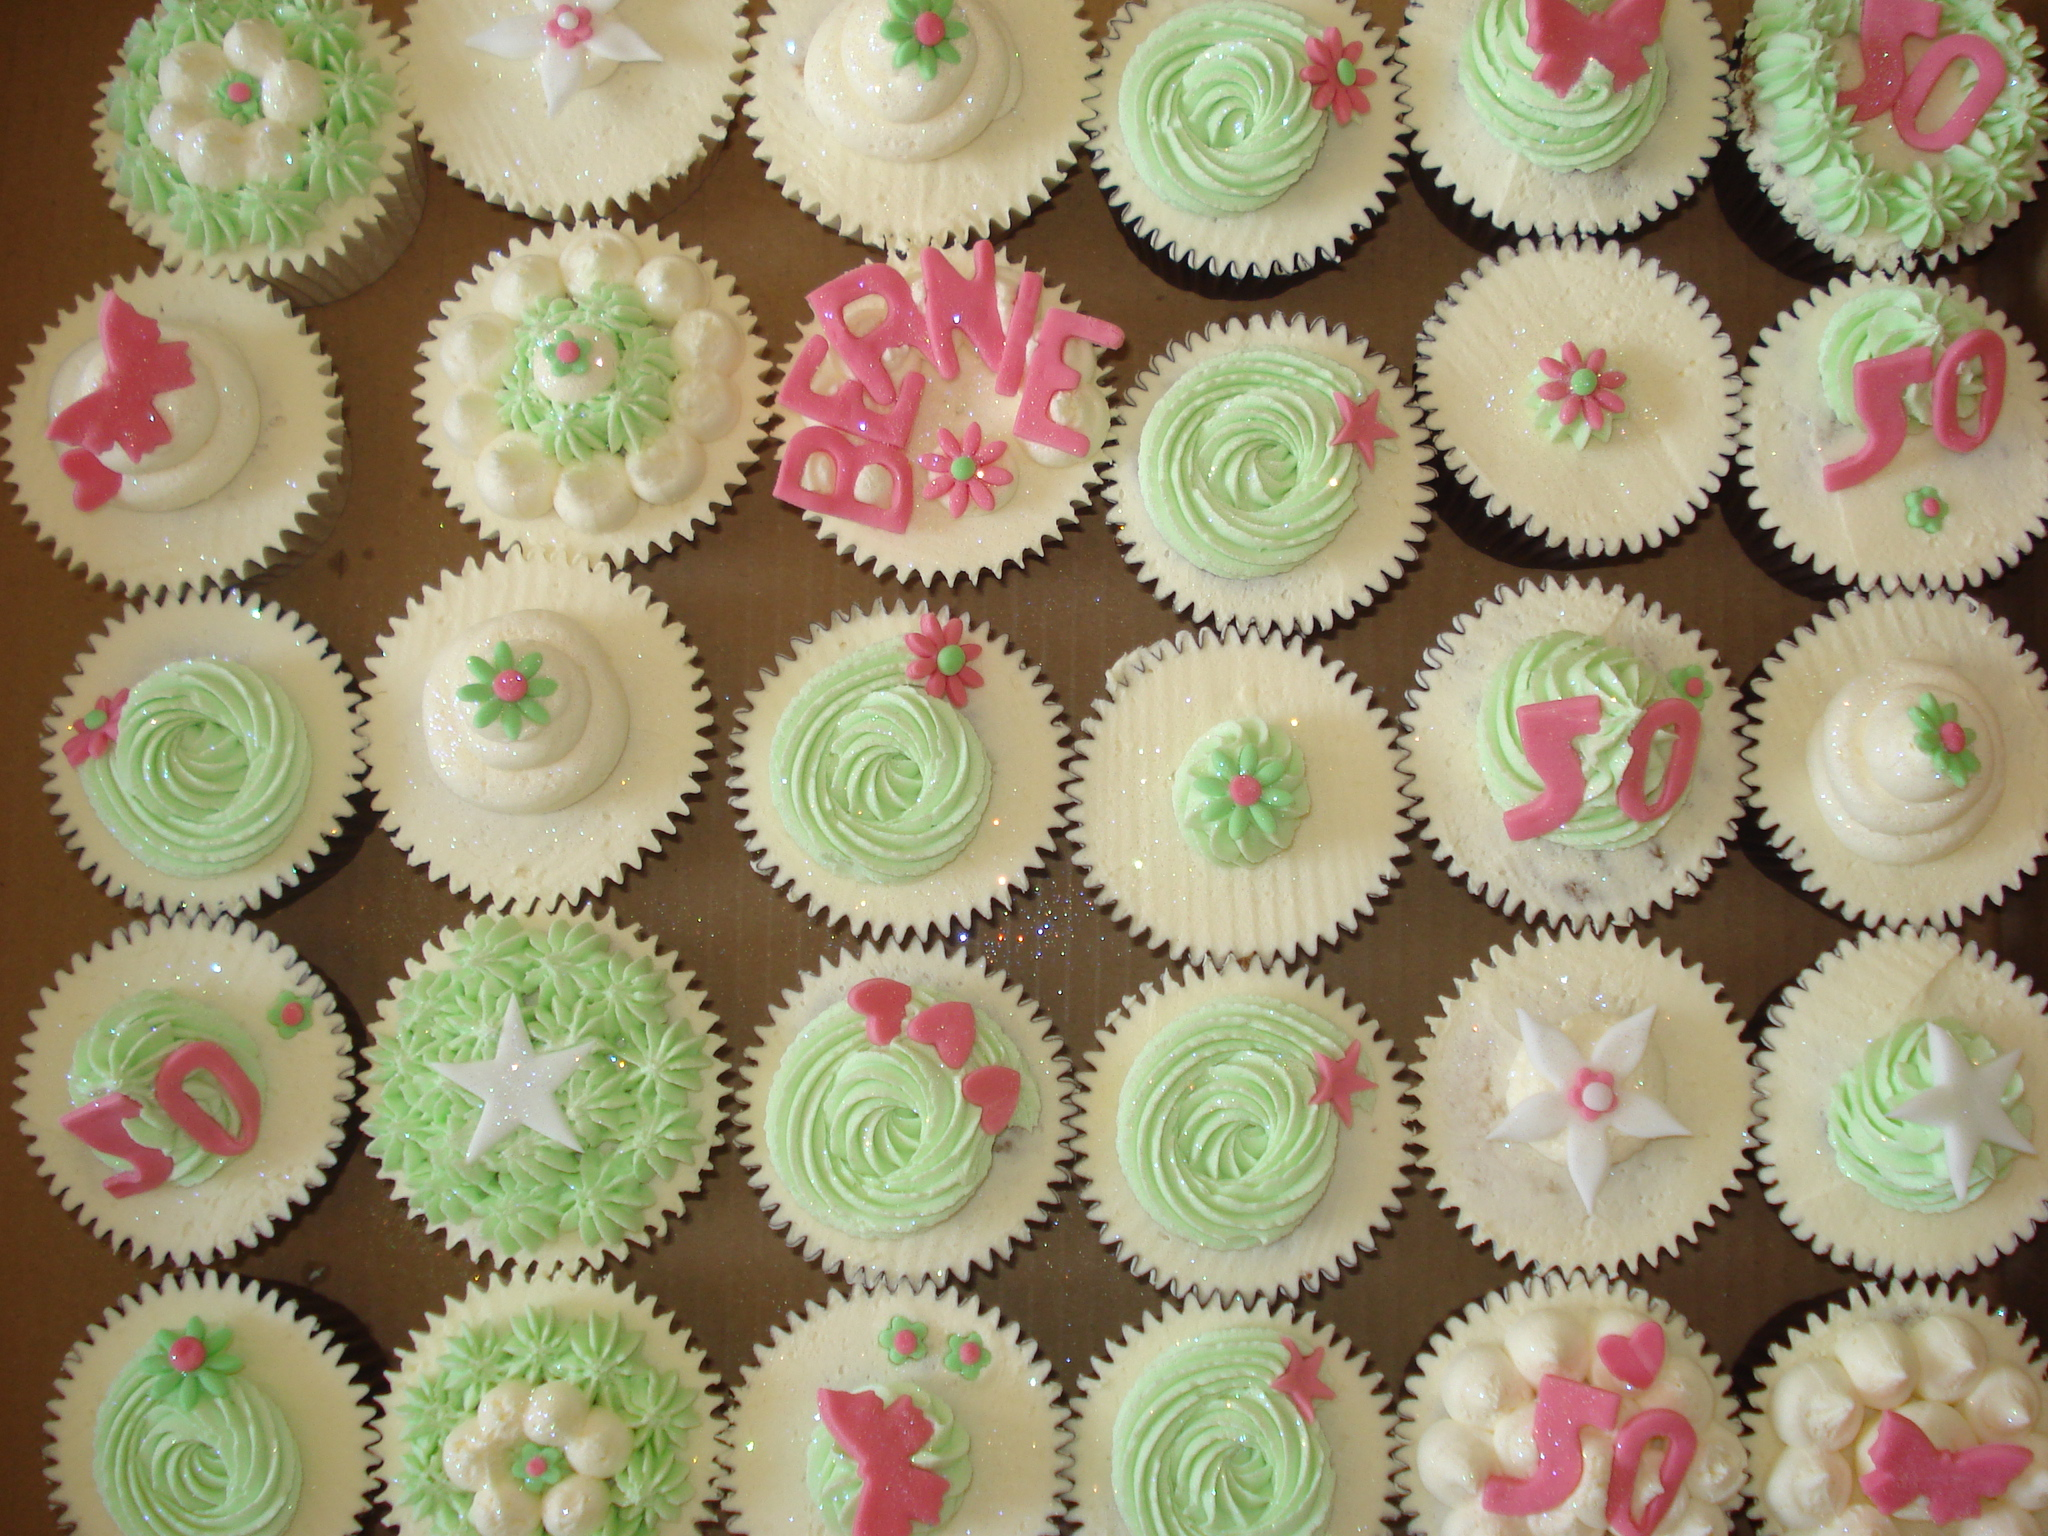 Cupcake Decorations For Birthday. Babycola s Mum 20Pcs ...